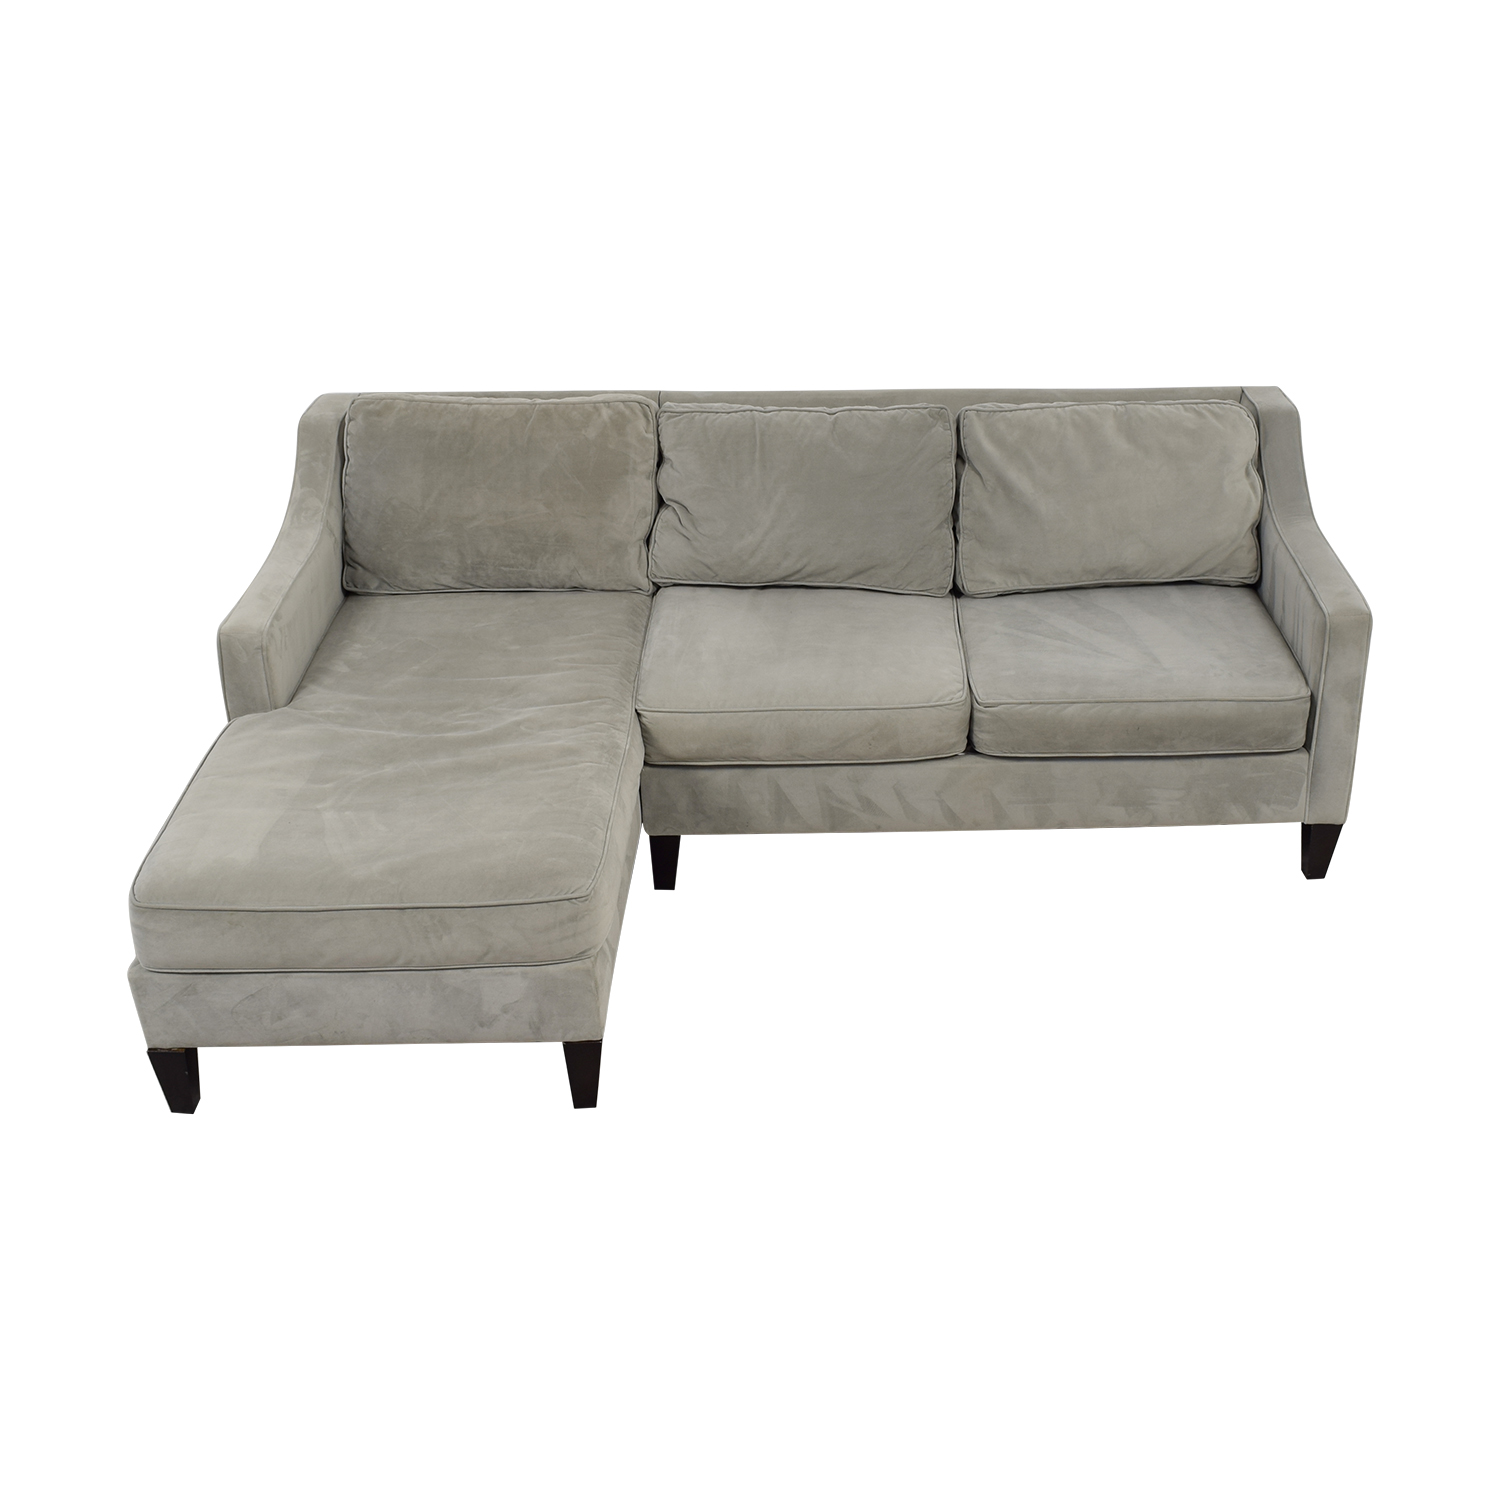 West Elm Paidge Grey Chaise Sectional sale